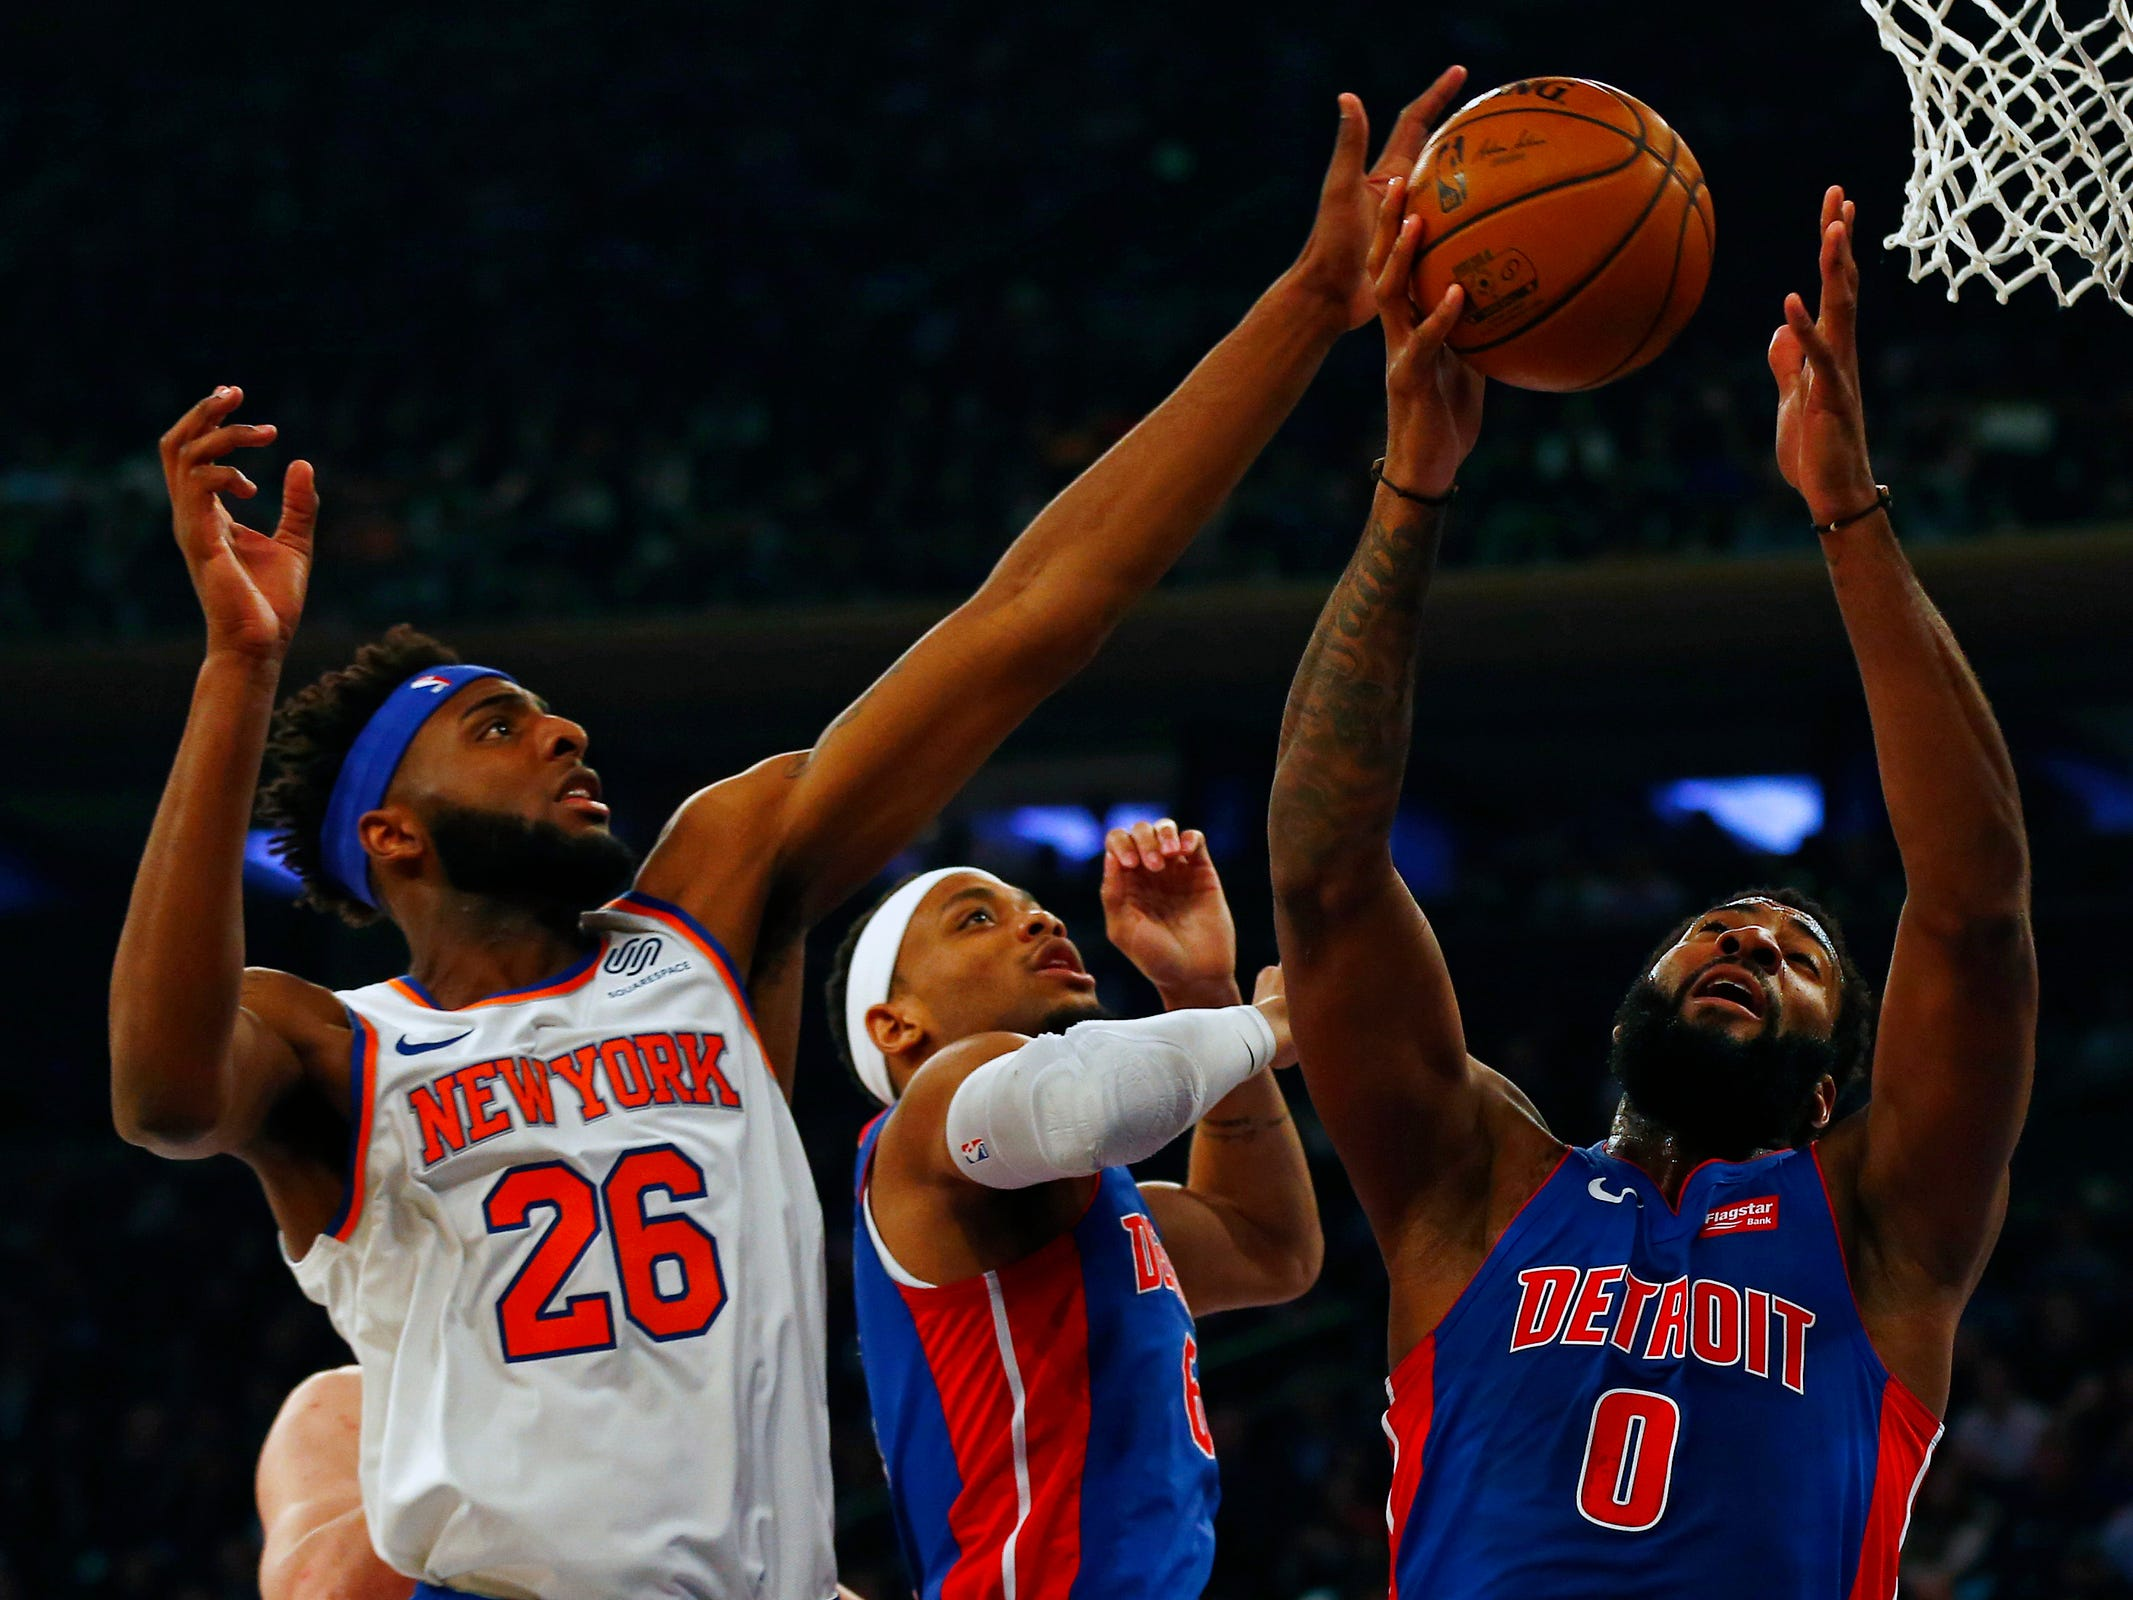 Detroit Pistons center Andre Drummond (0) grabs a rebound against New York Knicks center Mitchell Robinson (26) during the first half at Madison Square Garden on Wednesday, April 10, 2019.